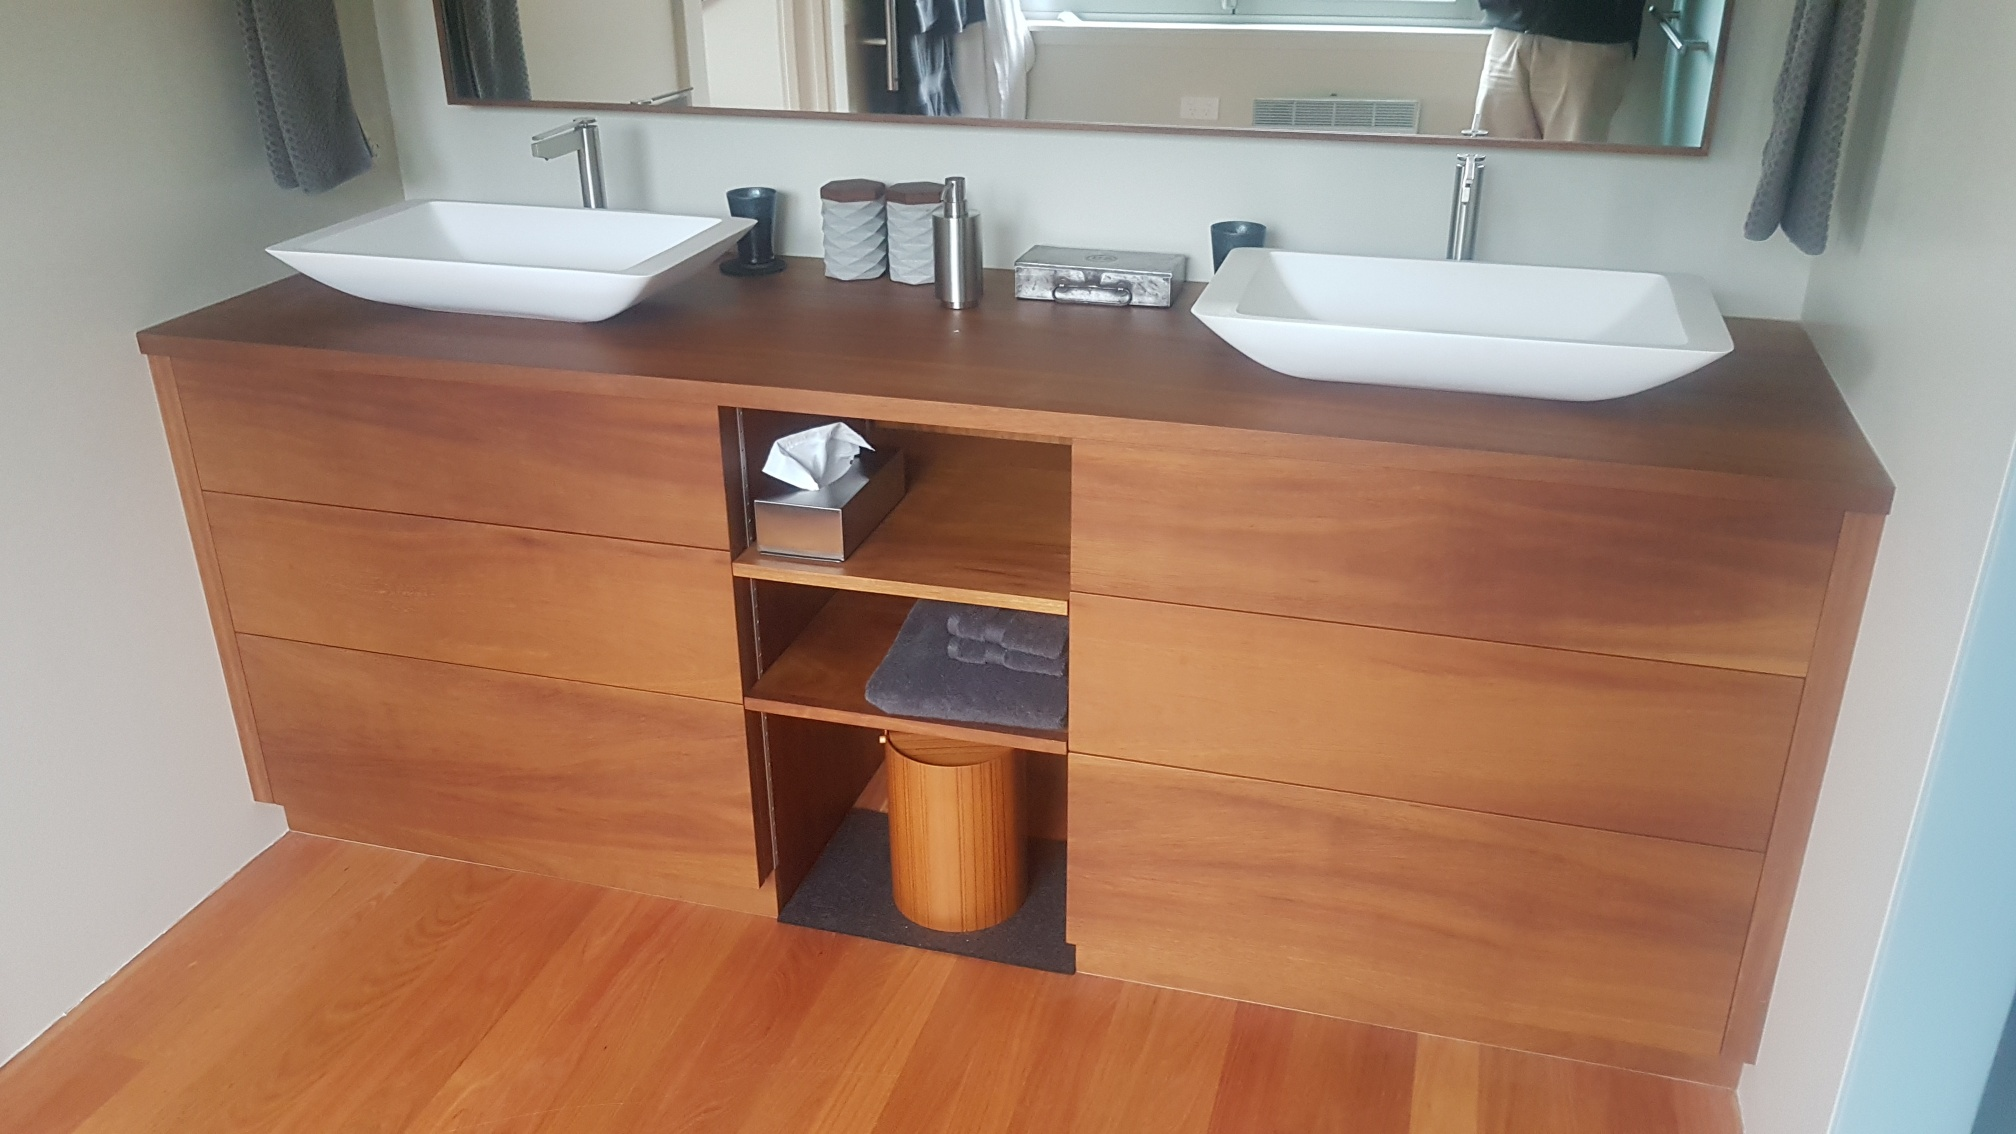 Iroko vanity unit with cut-out drawers